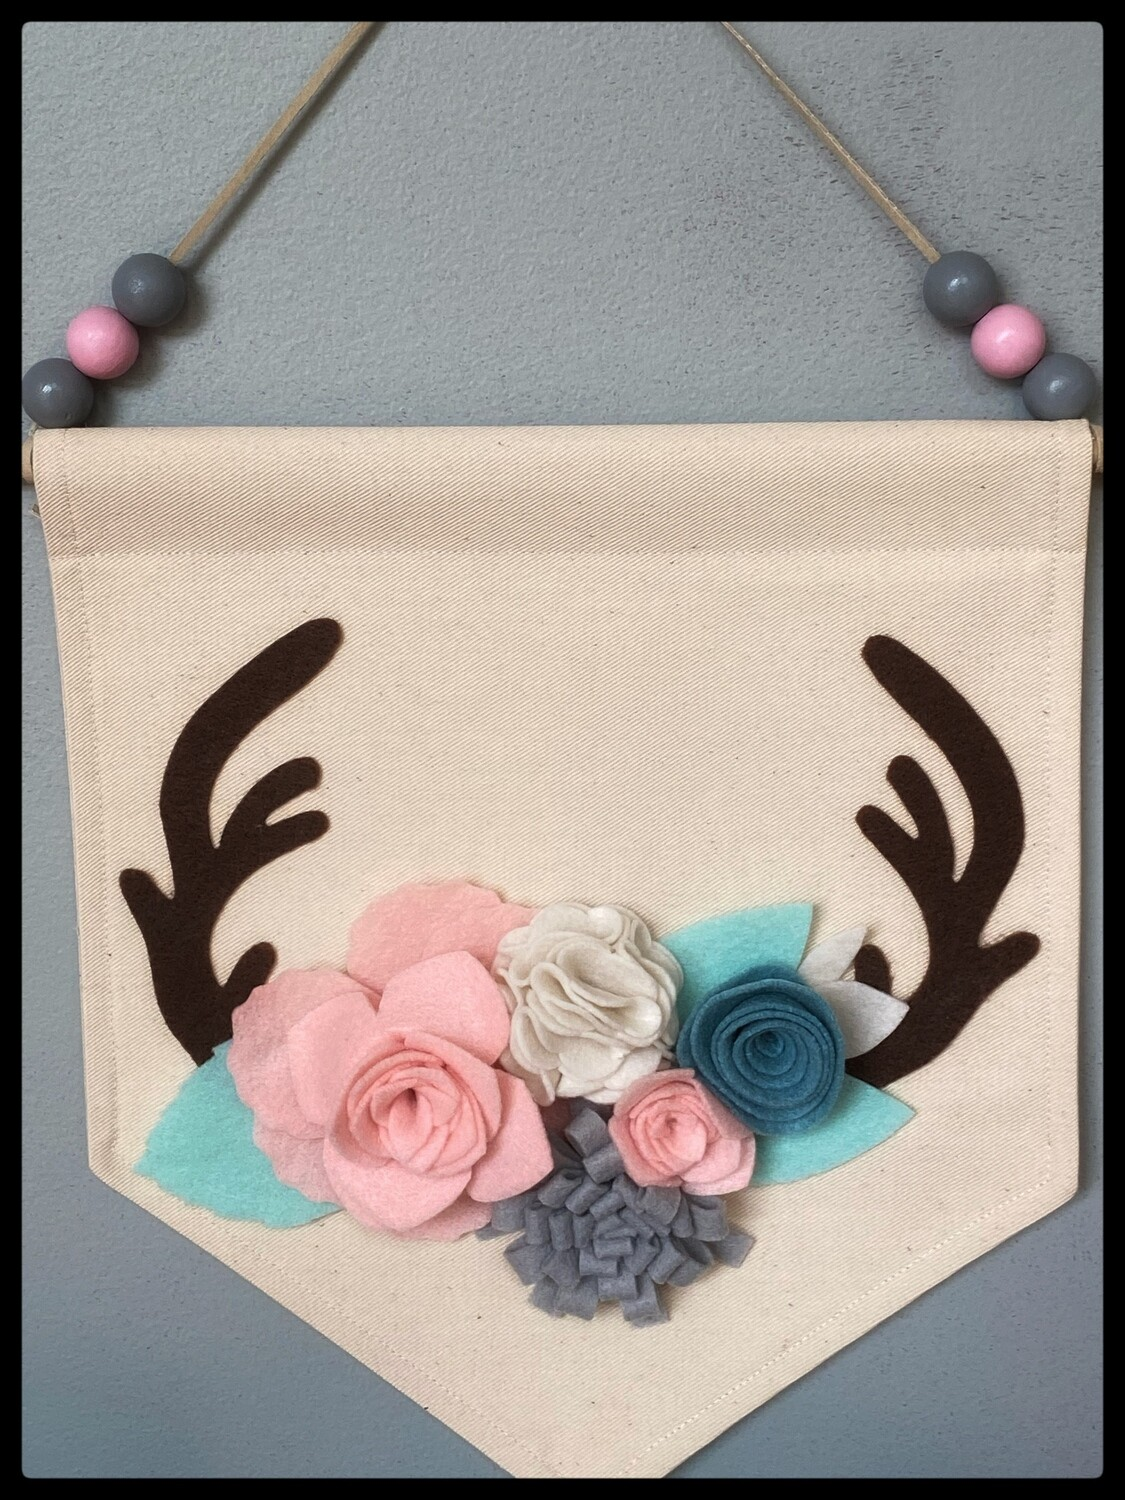 NEW Floral Antler Wall Art, Hanging Canvas , Deer Decor, Antler Art, Felt  Floral  Wall Decor, Handmade Canvas Wall Hanging